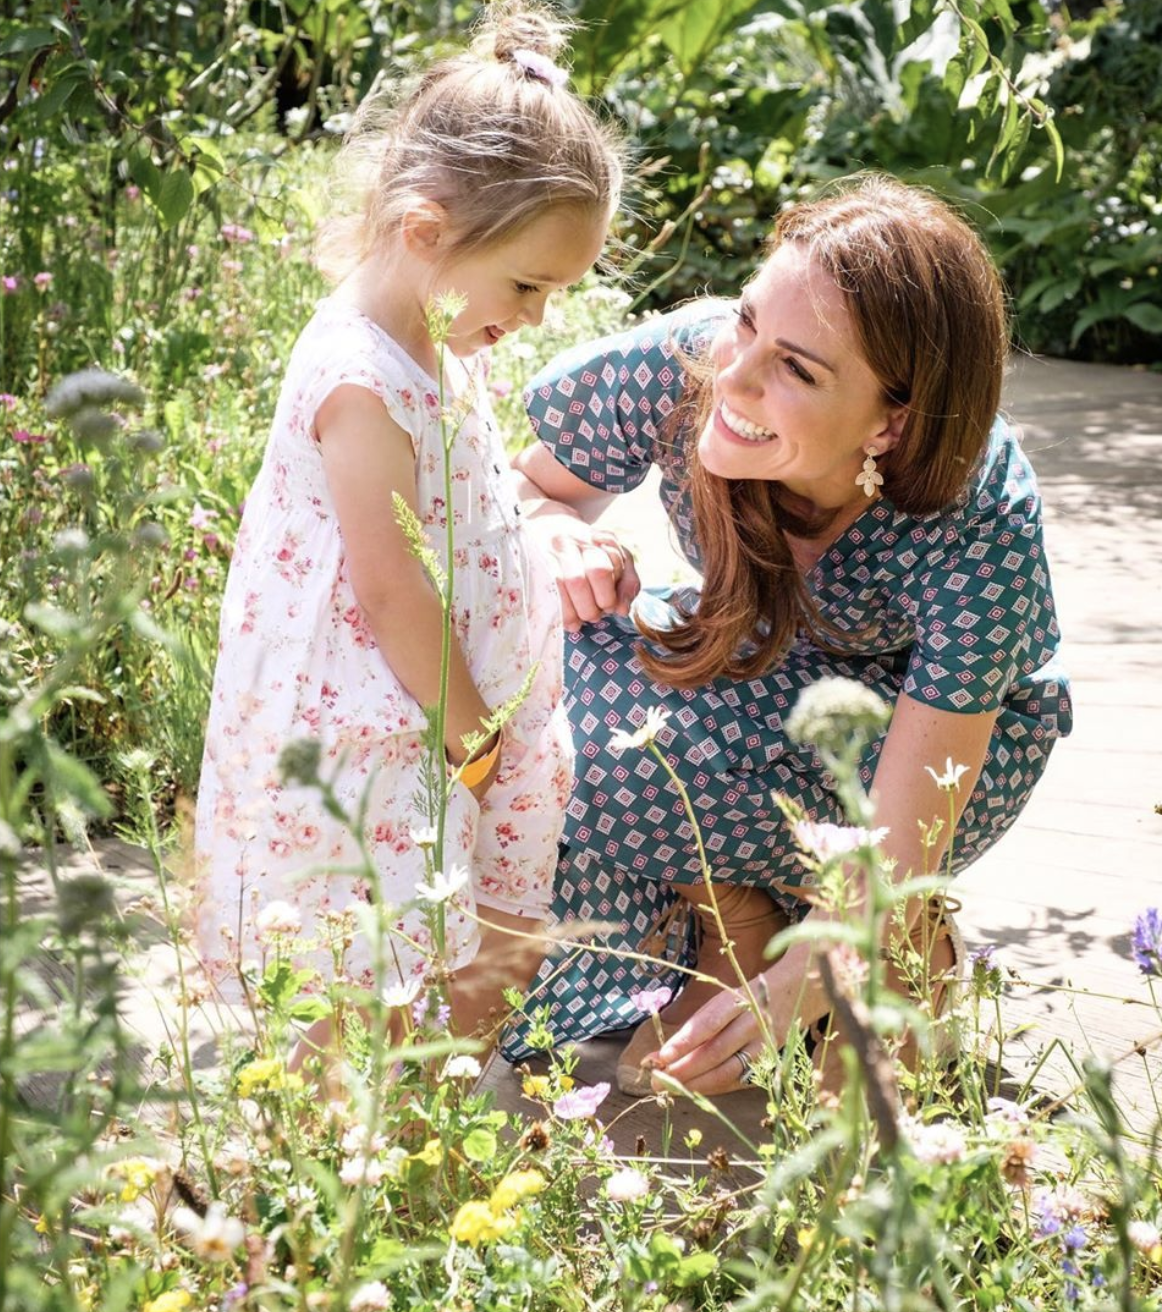 All smiles: Kate beams at a little girl in pink dress at her Back To Nature Garden. | Source: Instagram/kensigtonroyal